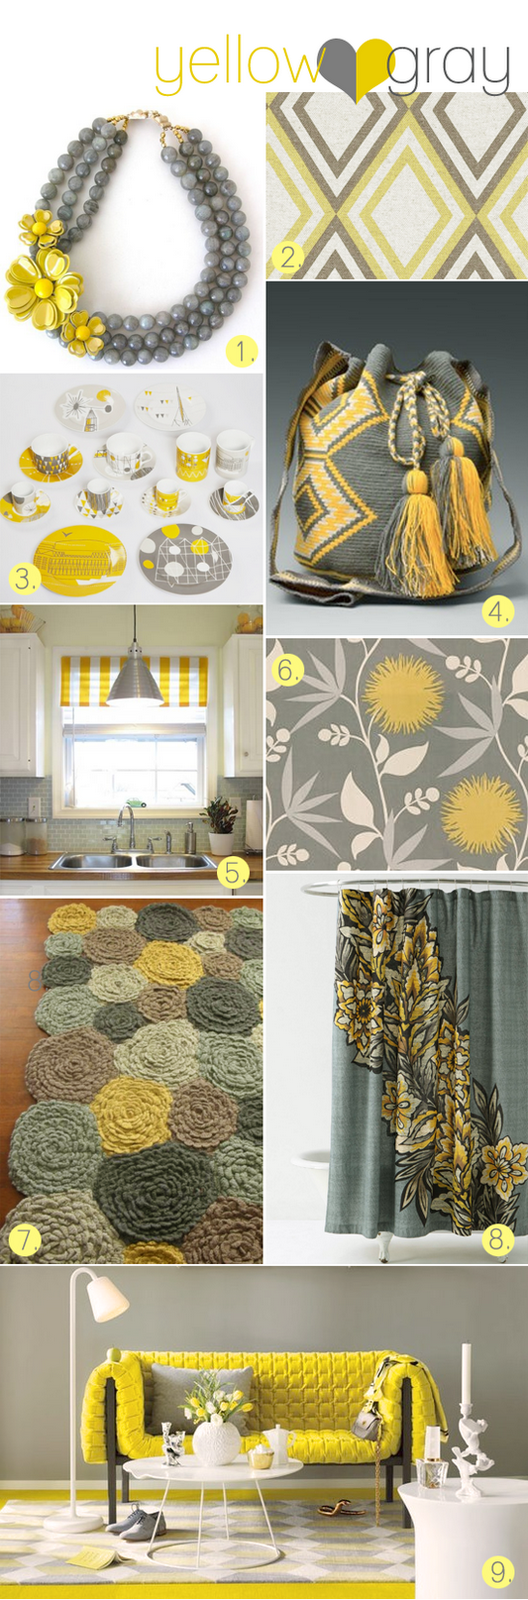 yellow and grey bathroom rug viewing gallery